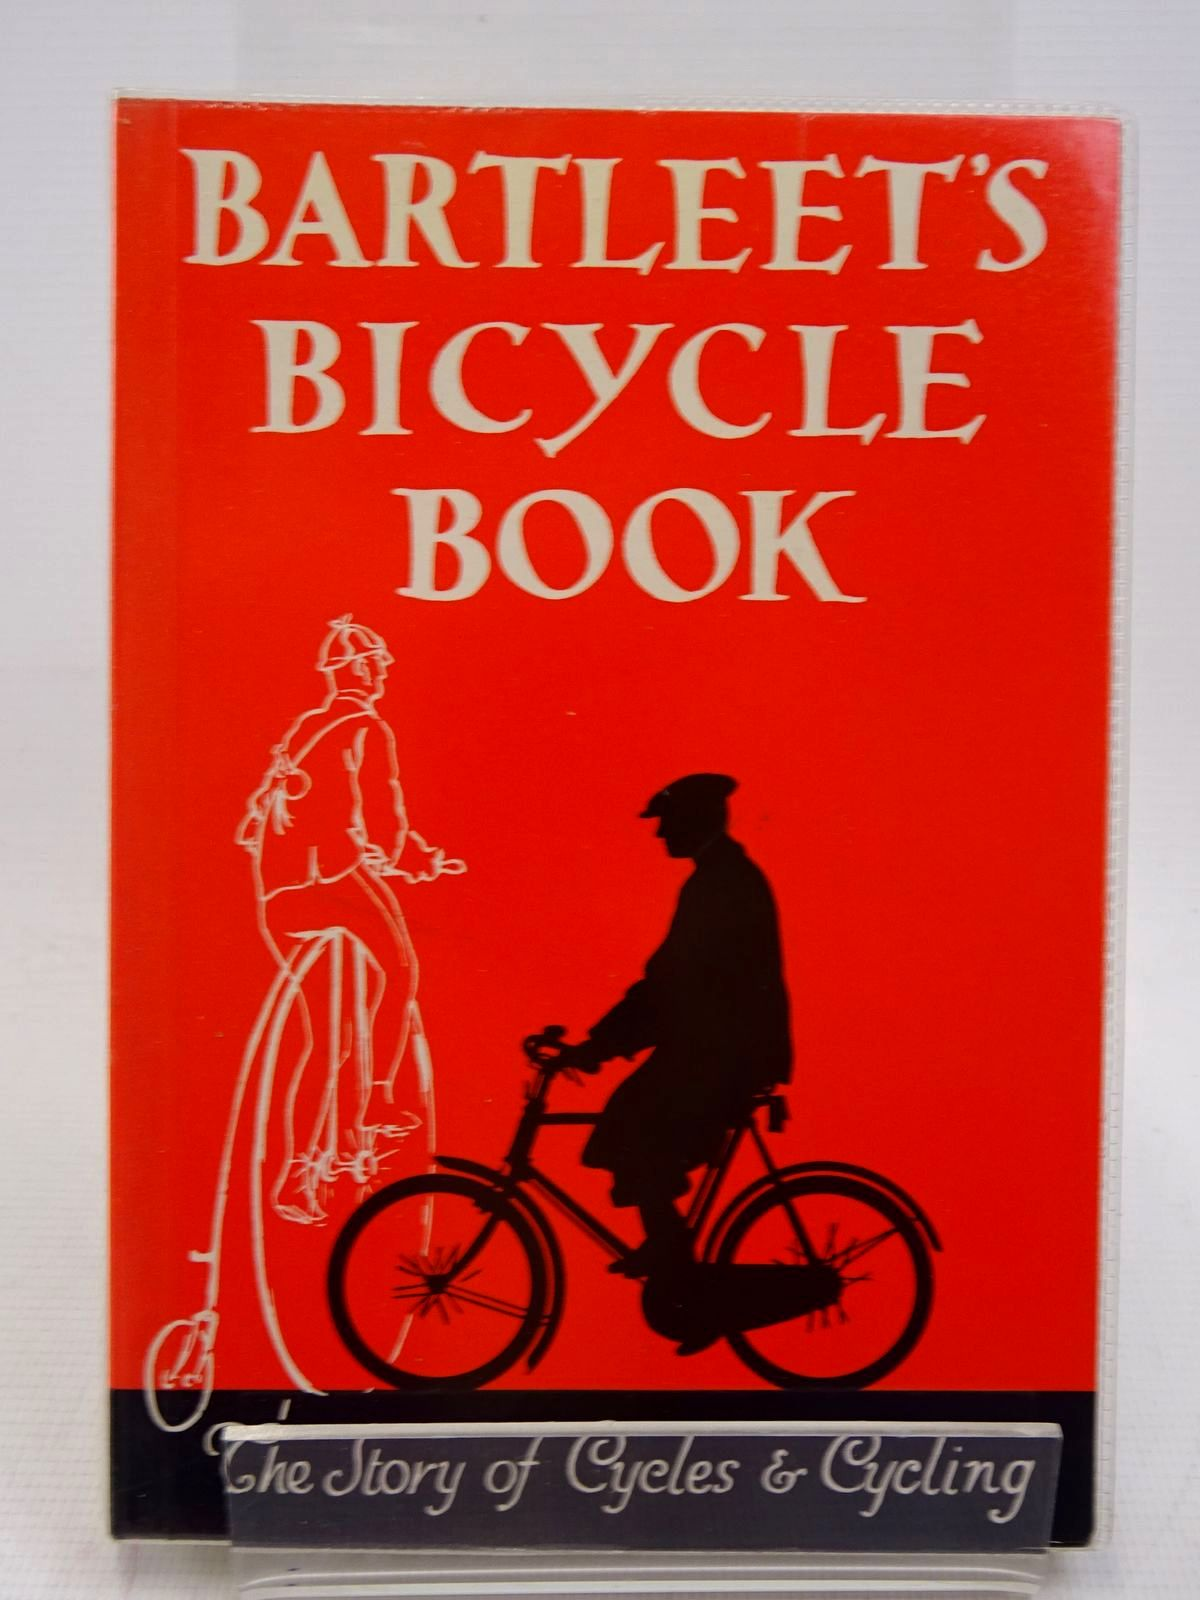 Photo of BARTLEET'S BICYCLE BOOK written by Bartleet, H.W. published by Ed. J. Burrow & Co. Ltd. (STOCK CODE: 1817066)  for sale by Stella & Rose's Books